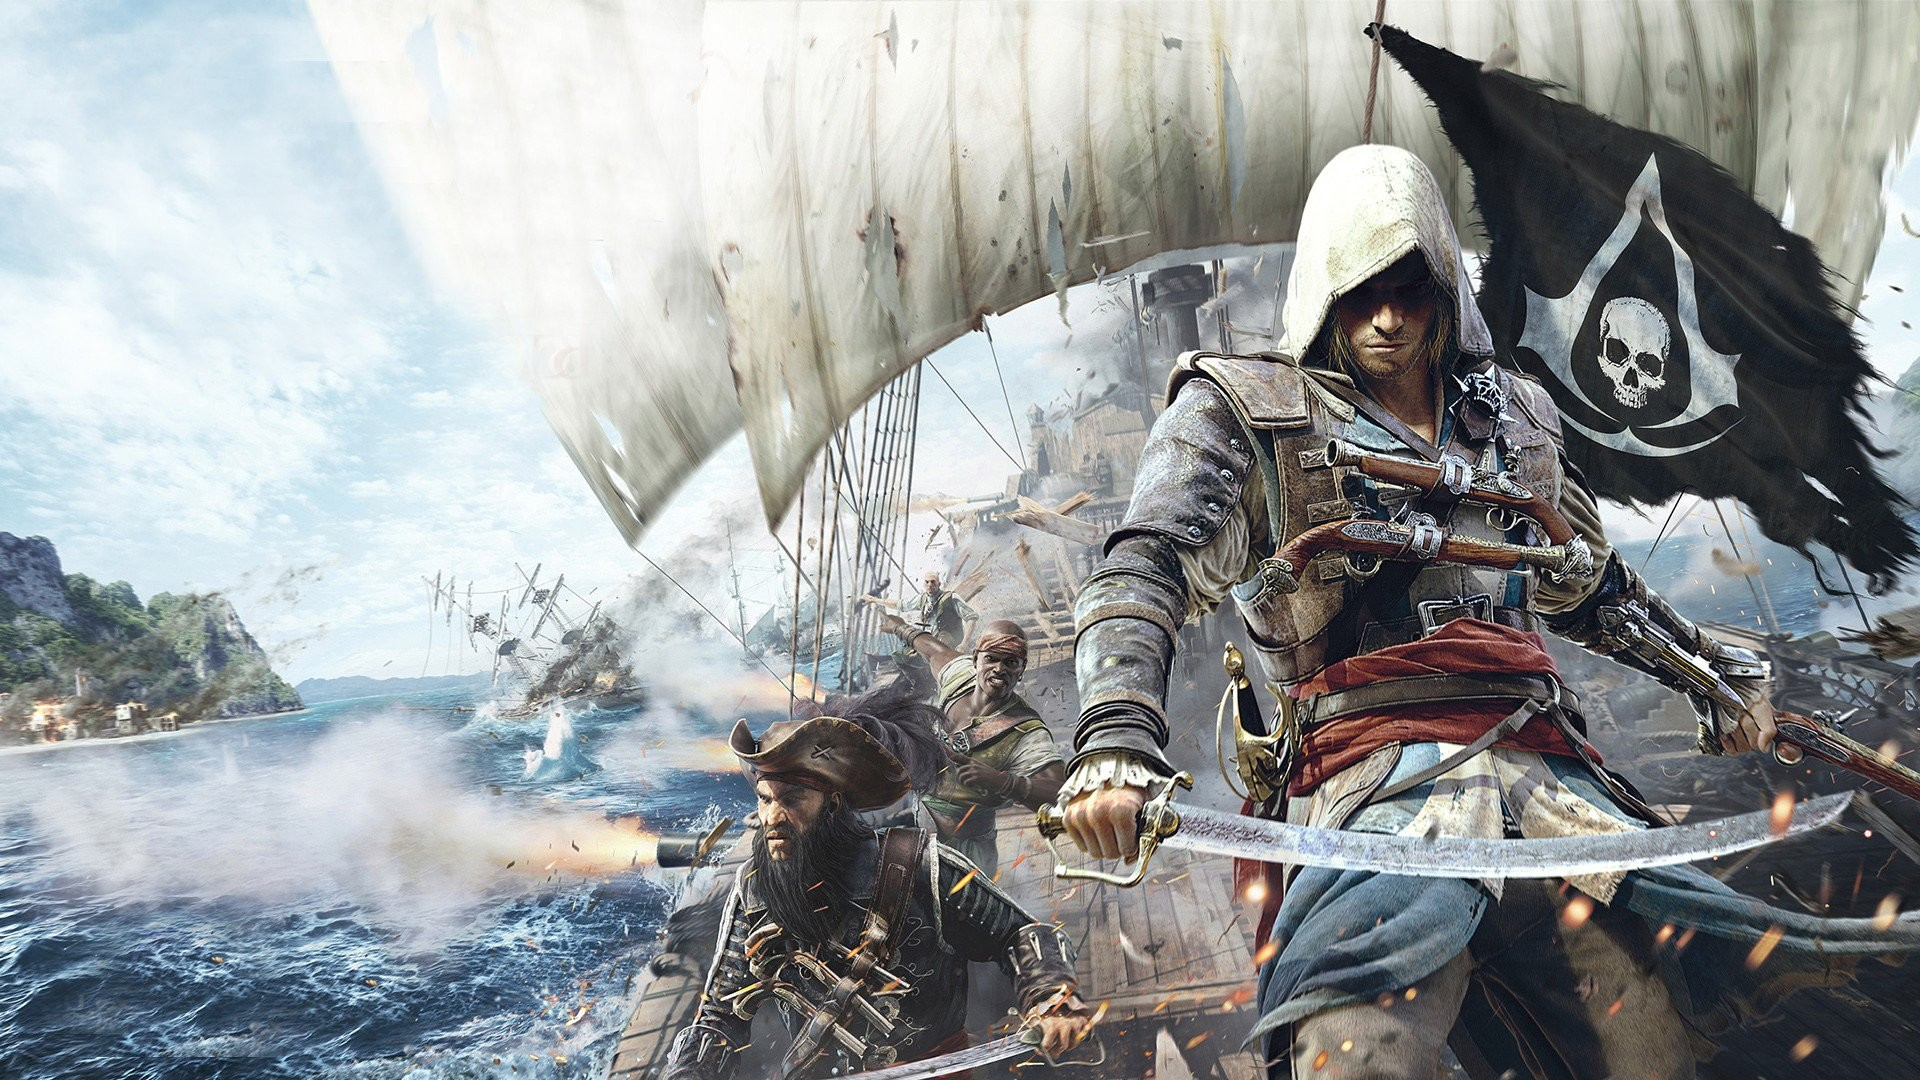 1920x1080 Assassins Creed 4 Black Flag